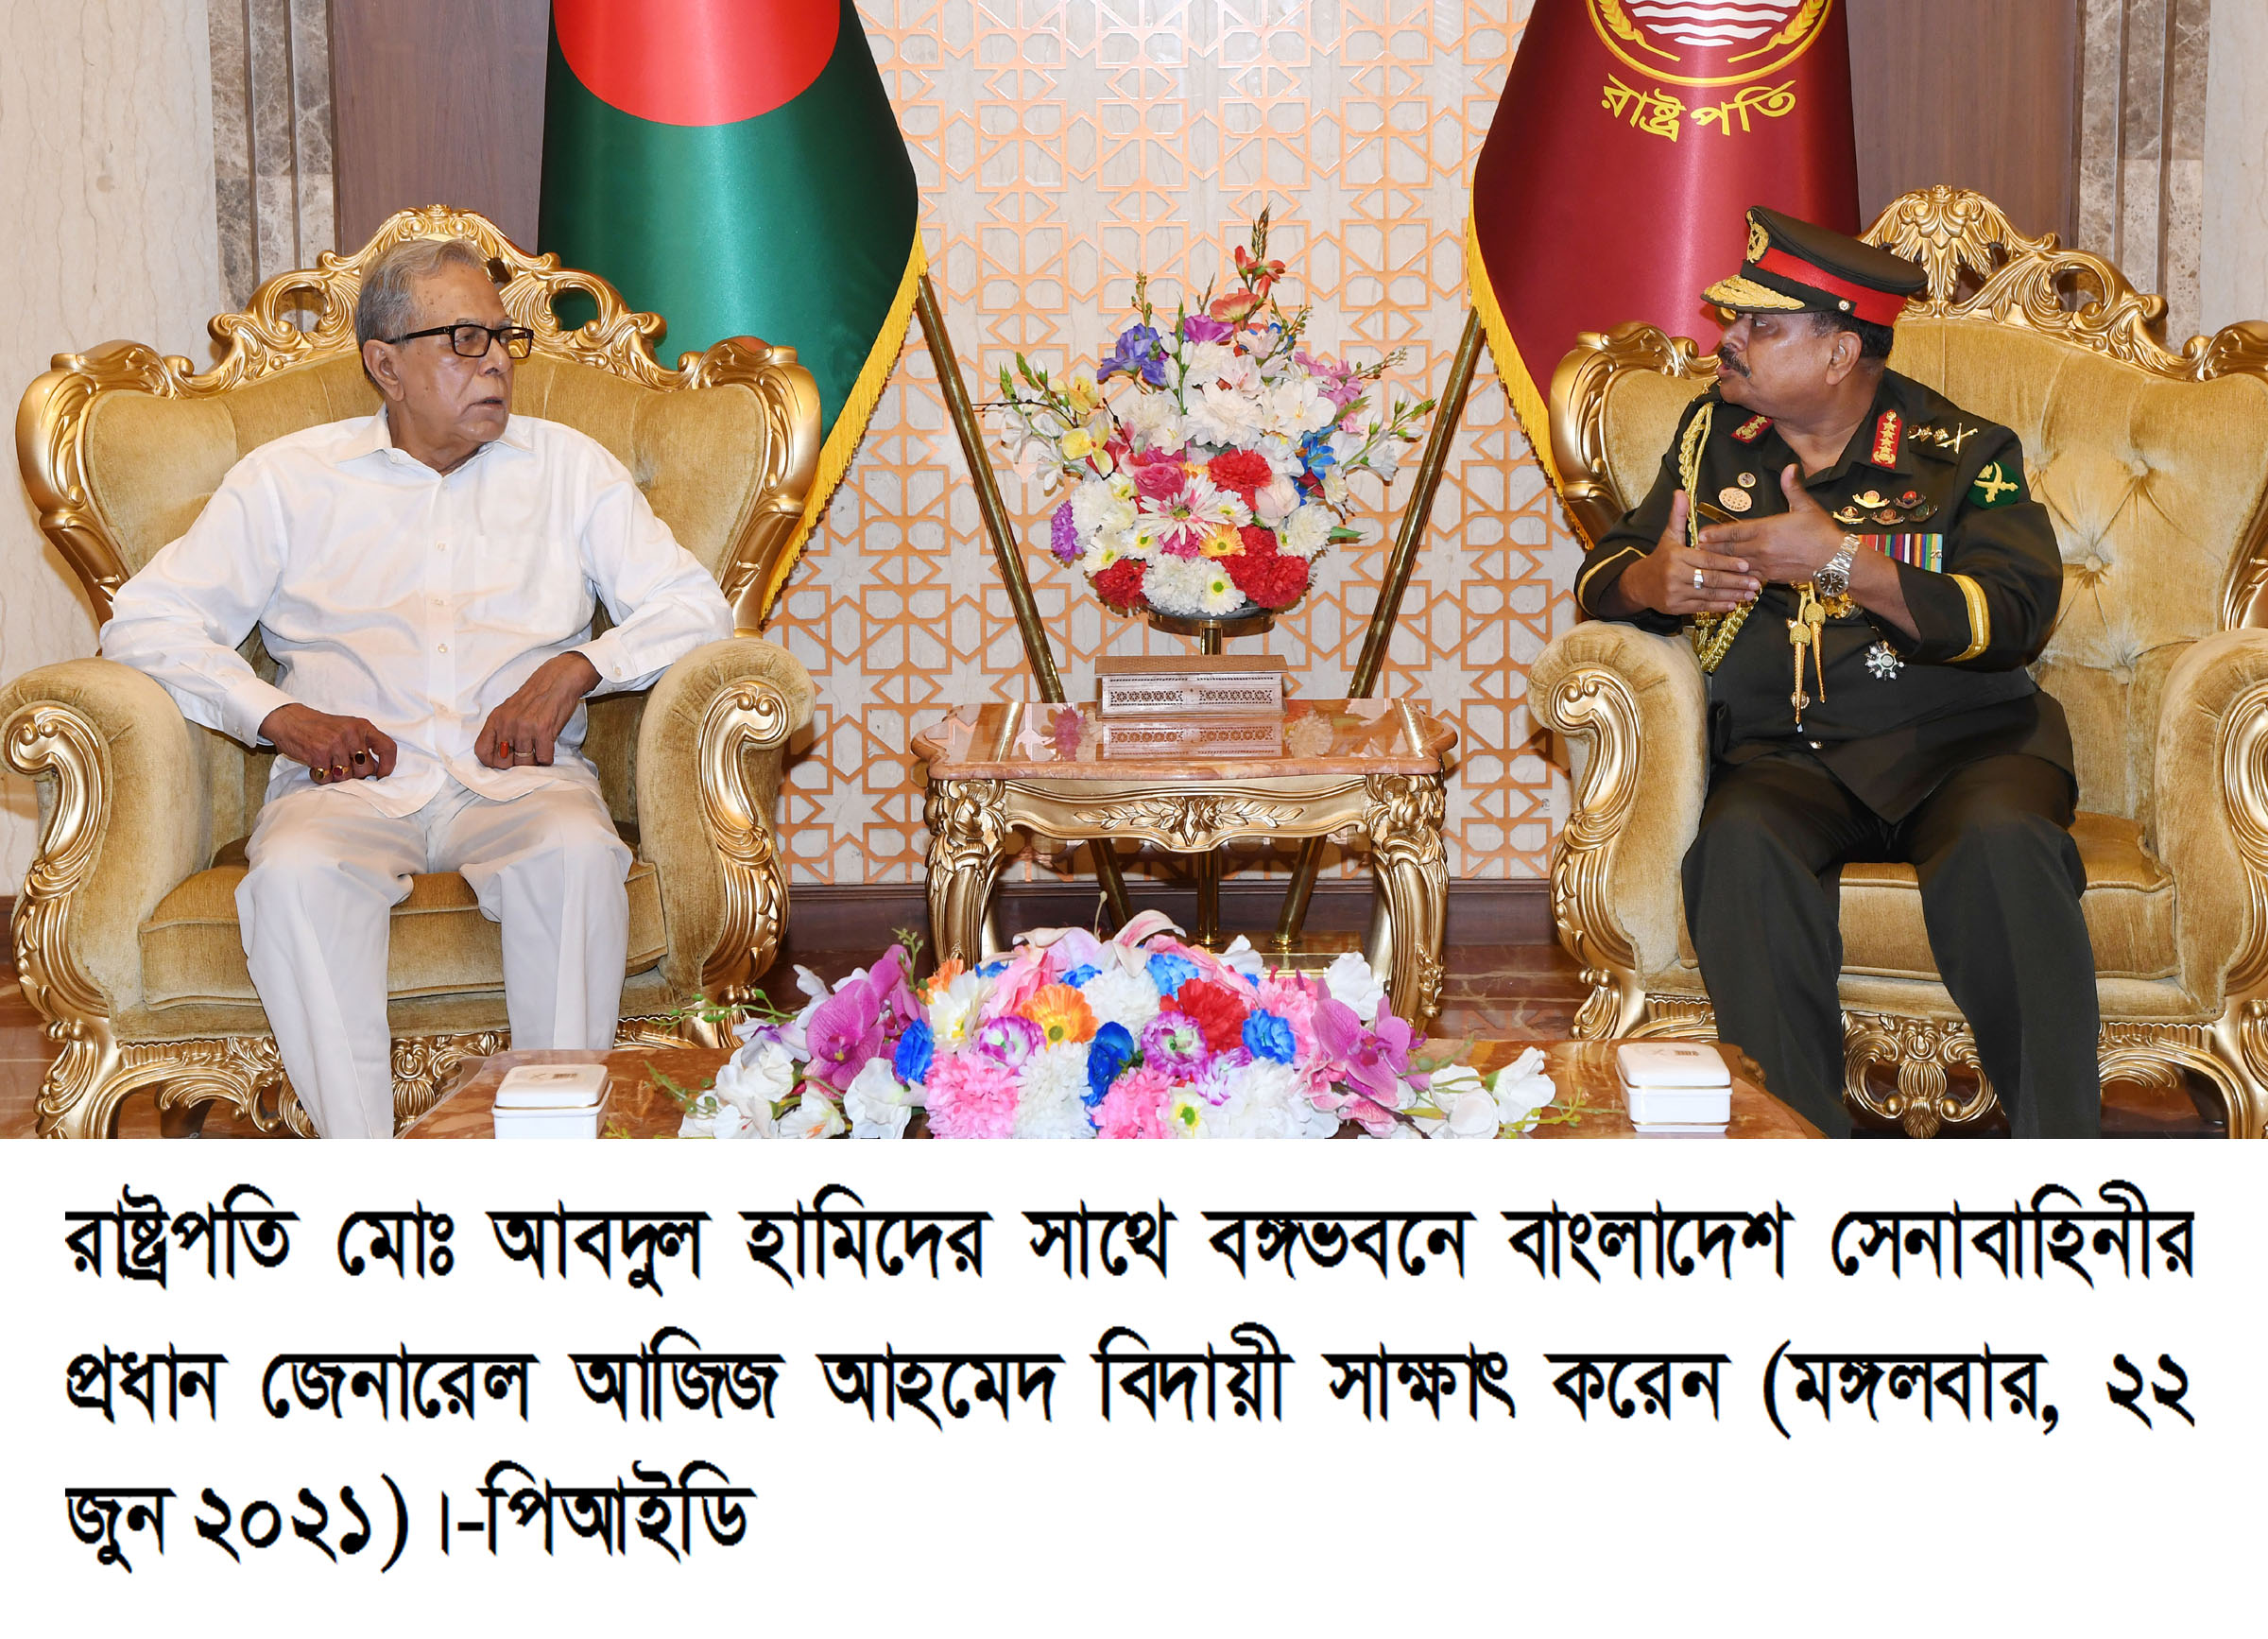 President and outgoing Army chief meet